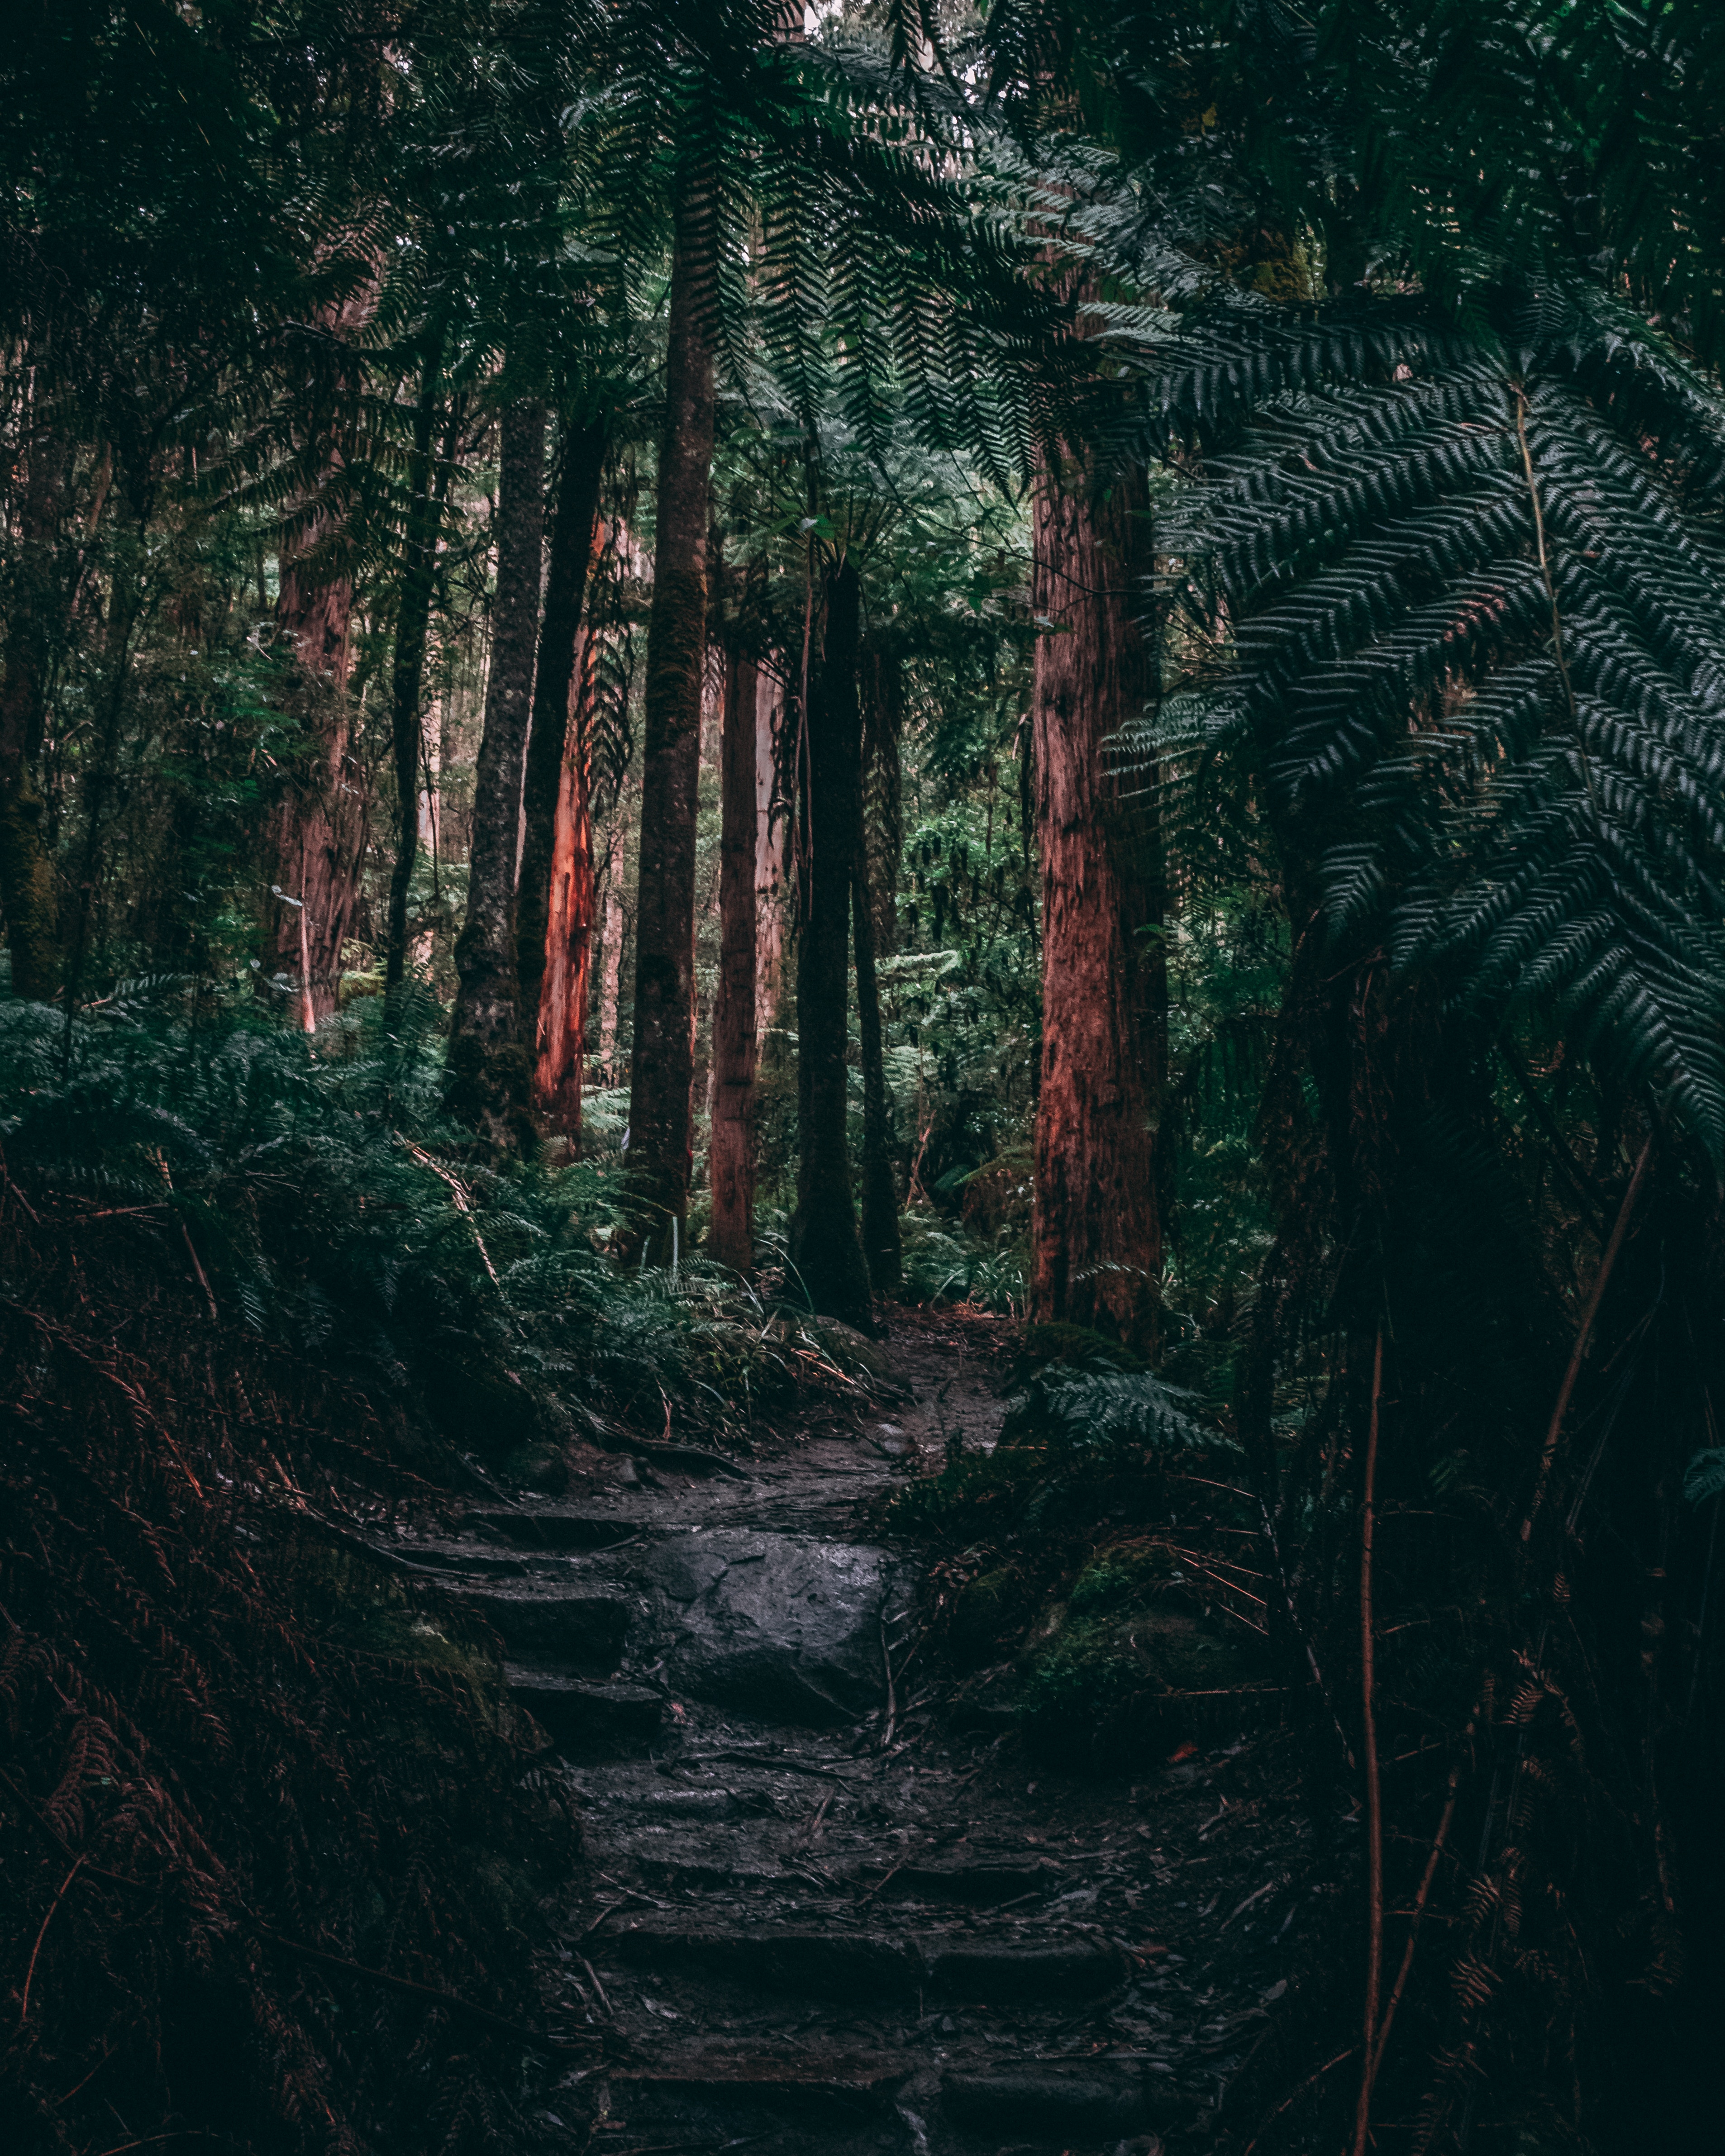 72863 download wallpaper Nature, Trees, Fern, Forest, Path, Tropics, Jungle screensavers and pictures for free